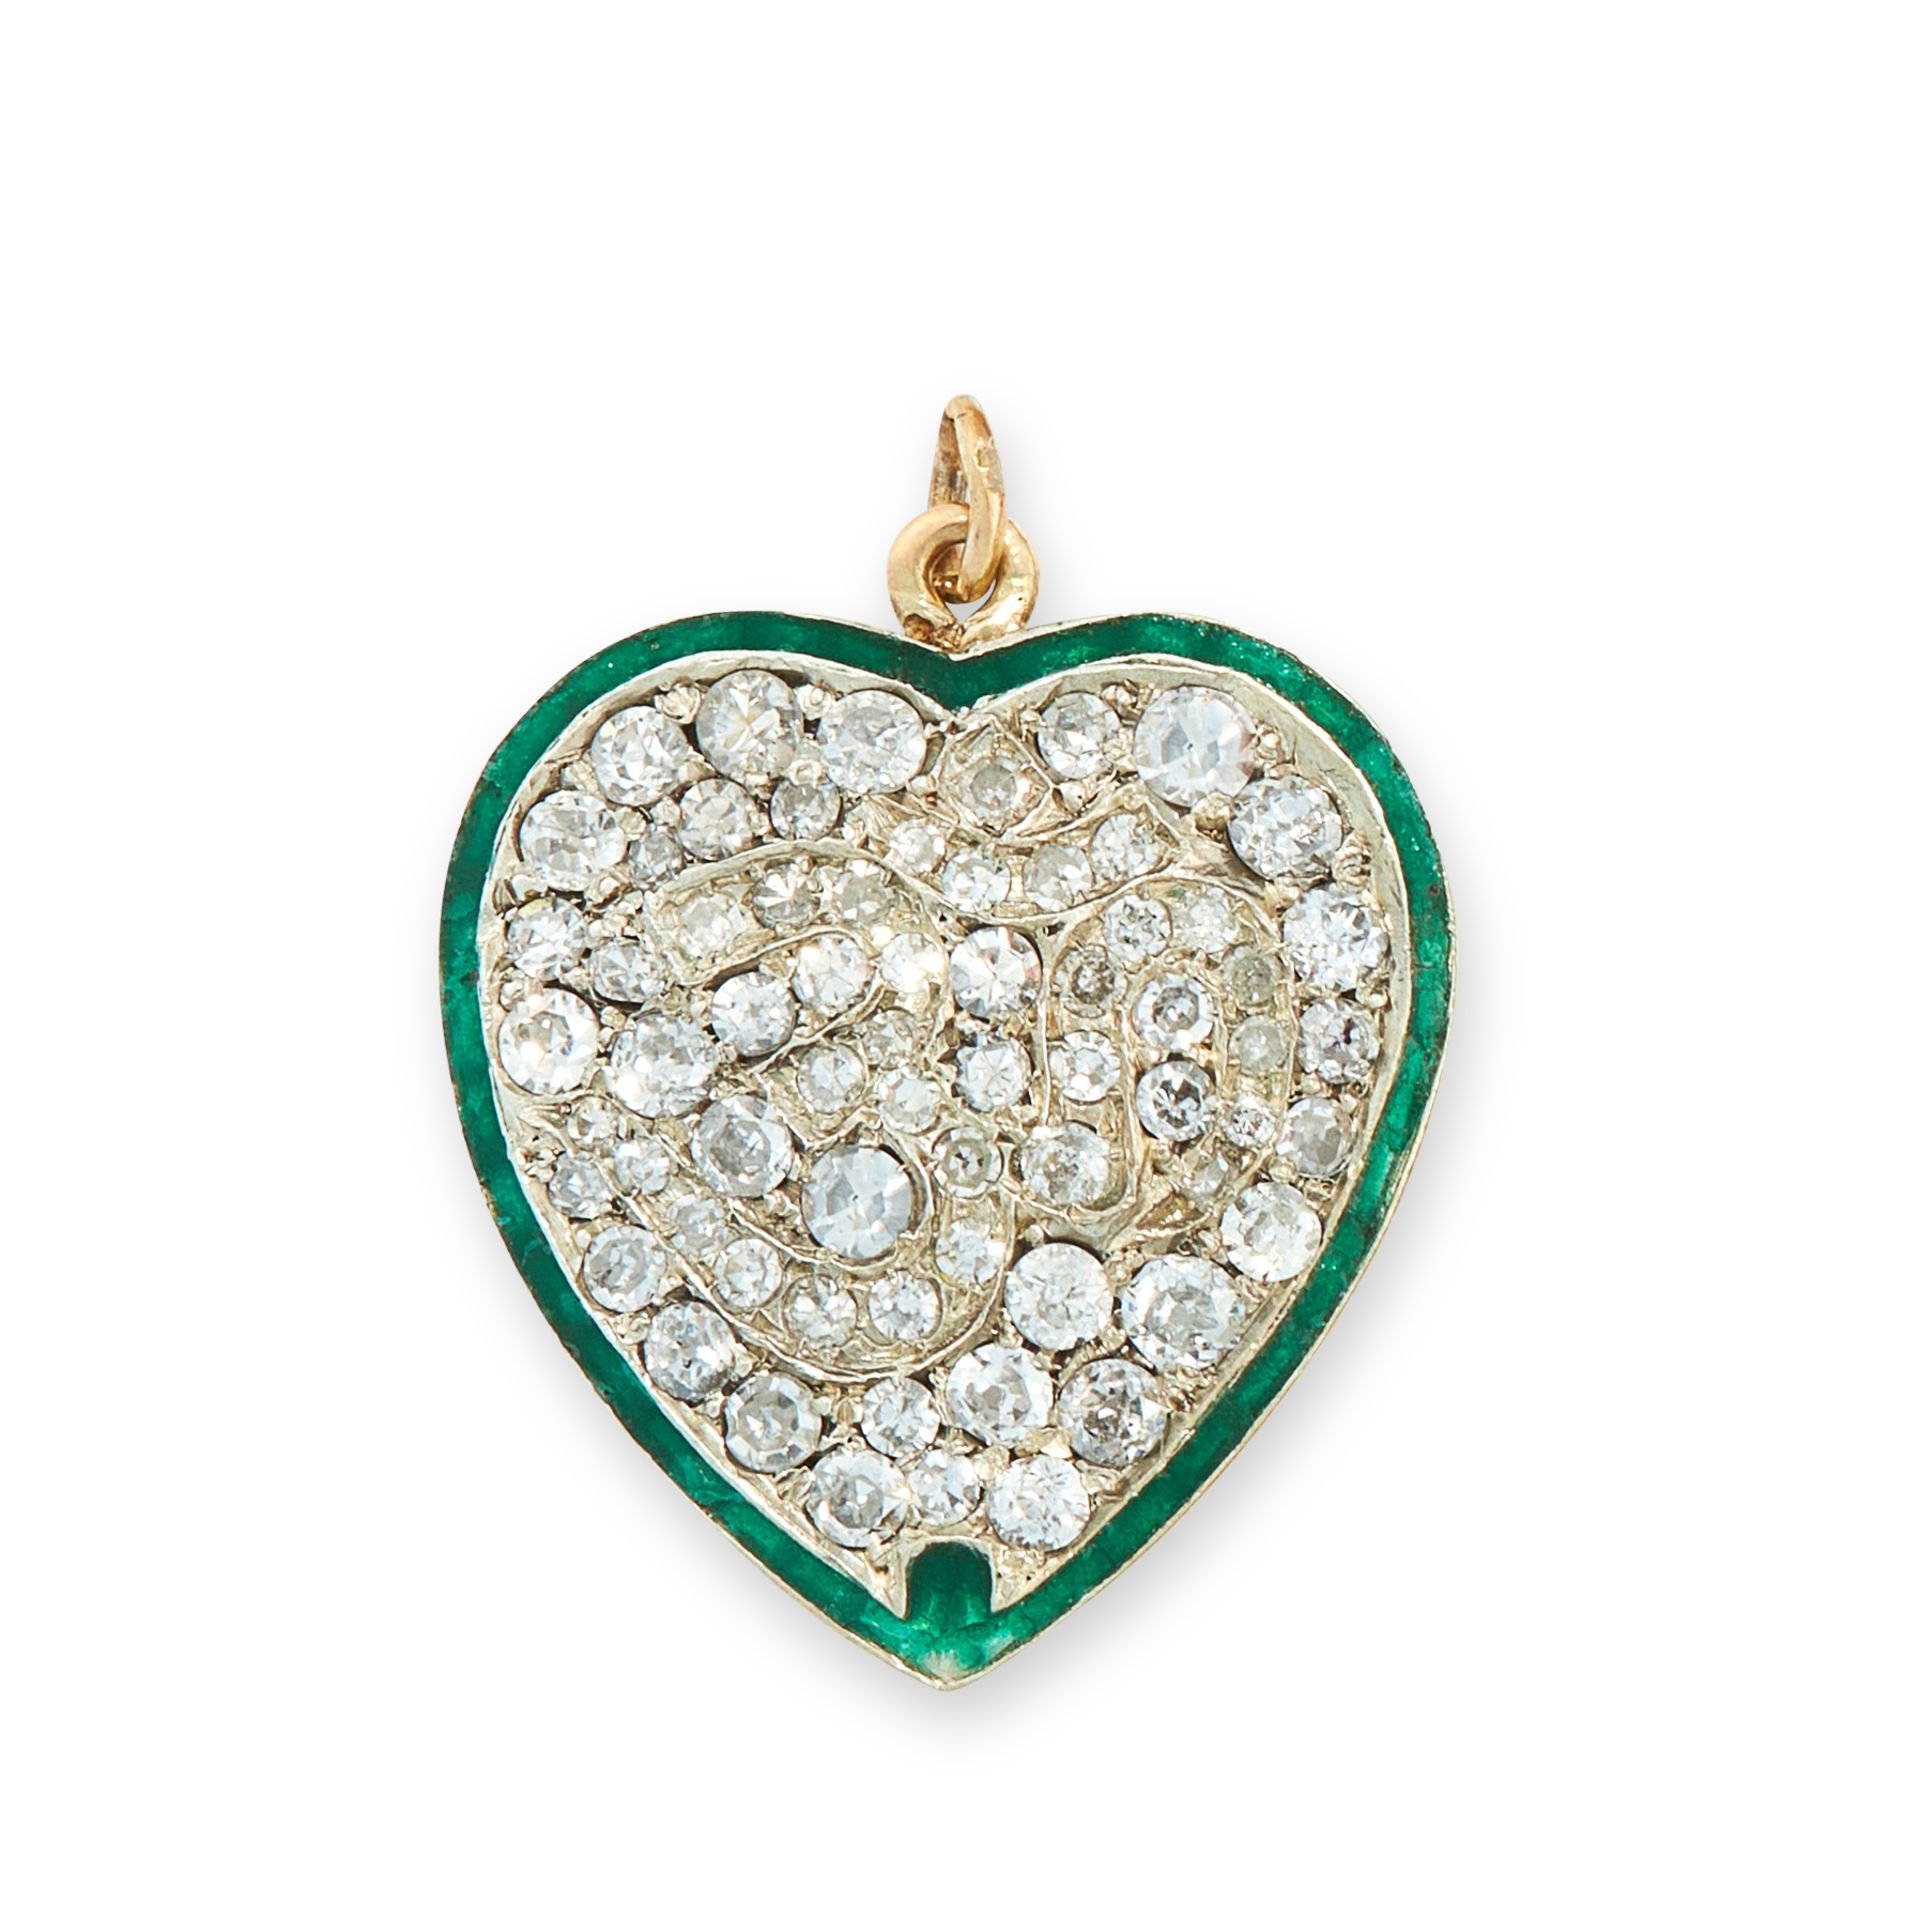 A DIAMOND AND ENAMEL HEART PENDANT in yellow and white gold, set throughout with round cut diamonds,